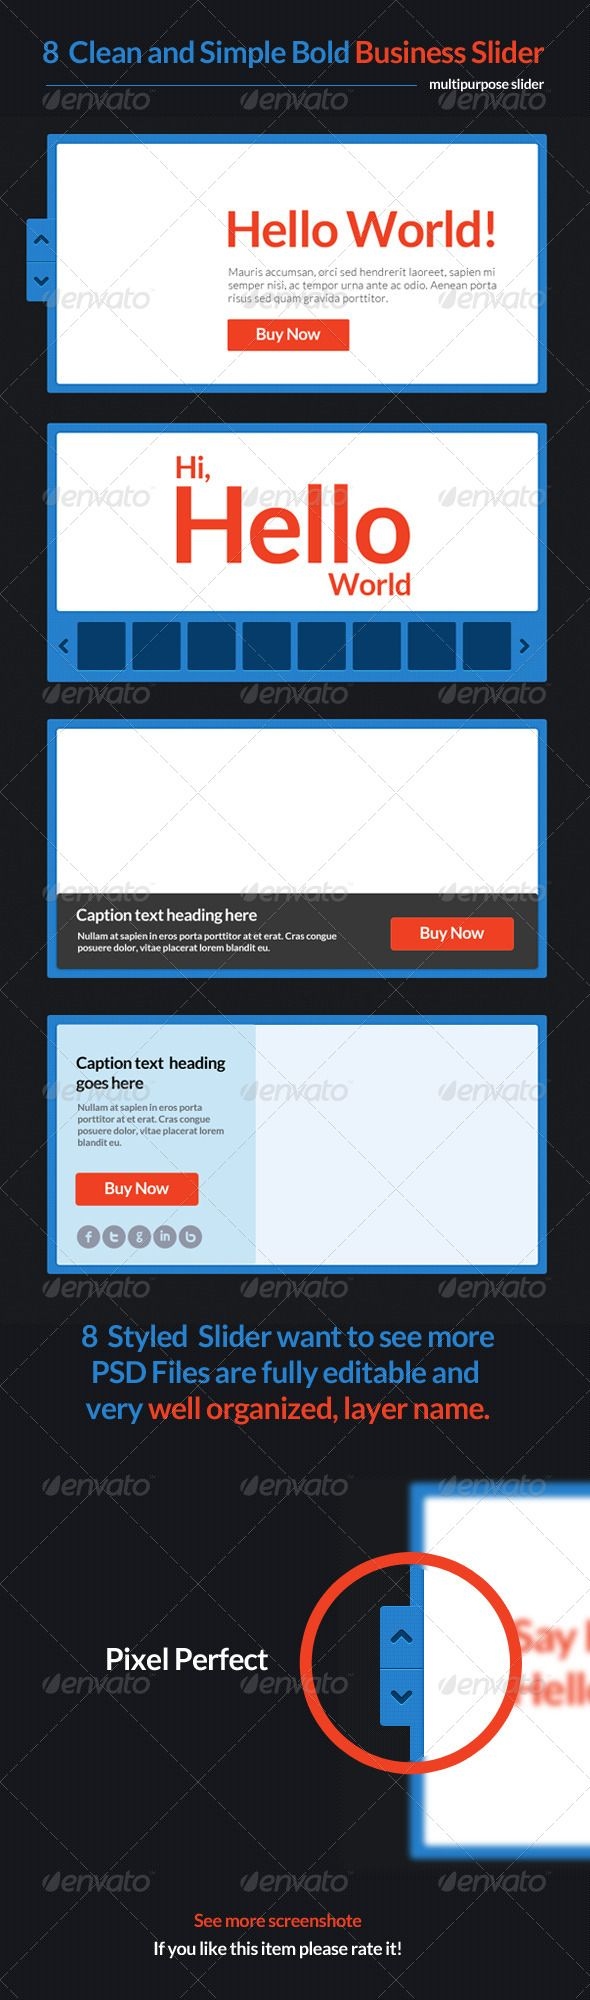 8 Clean and Simple Bold Business Slider  - #Sliders & Features #Web Elements Download here:  https://graphicriver.net/item/8-clean-and-simple-bold-business-slider-/4644083?ref=alena994